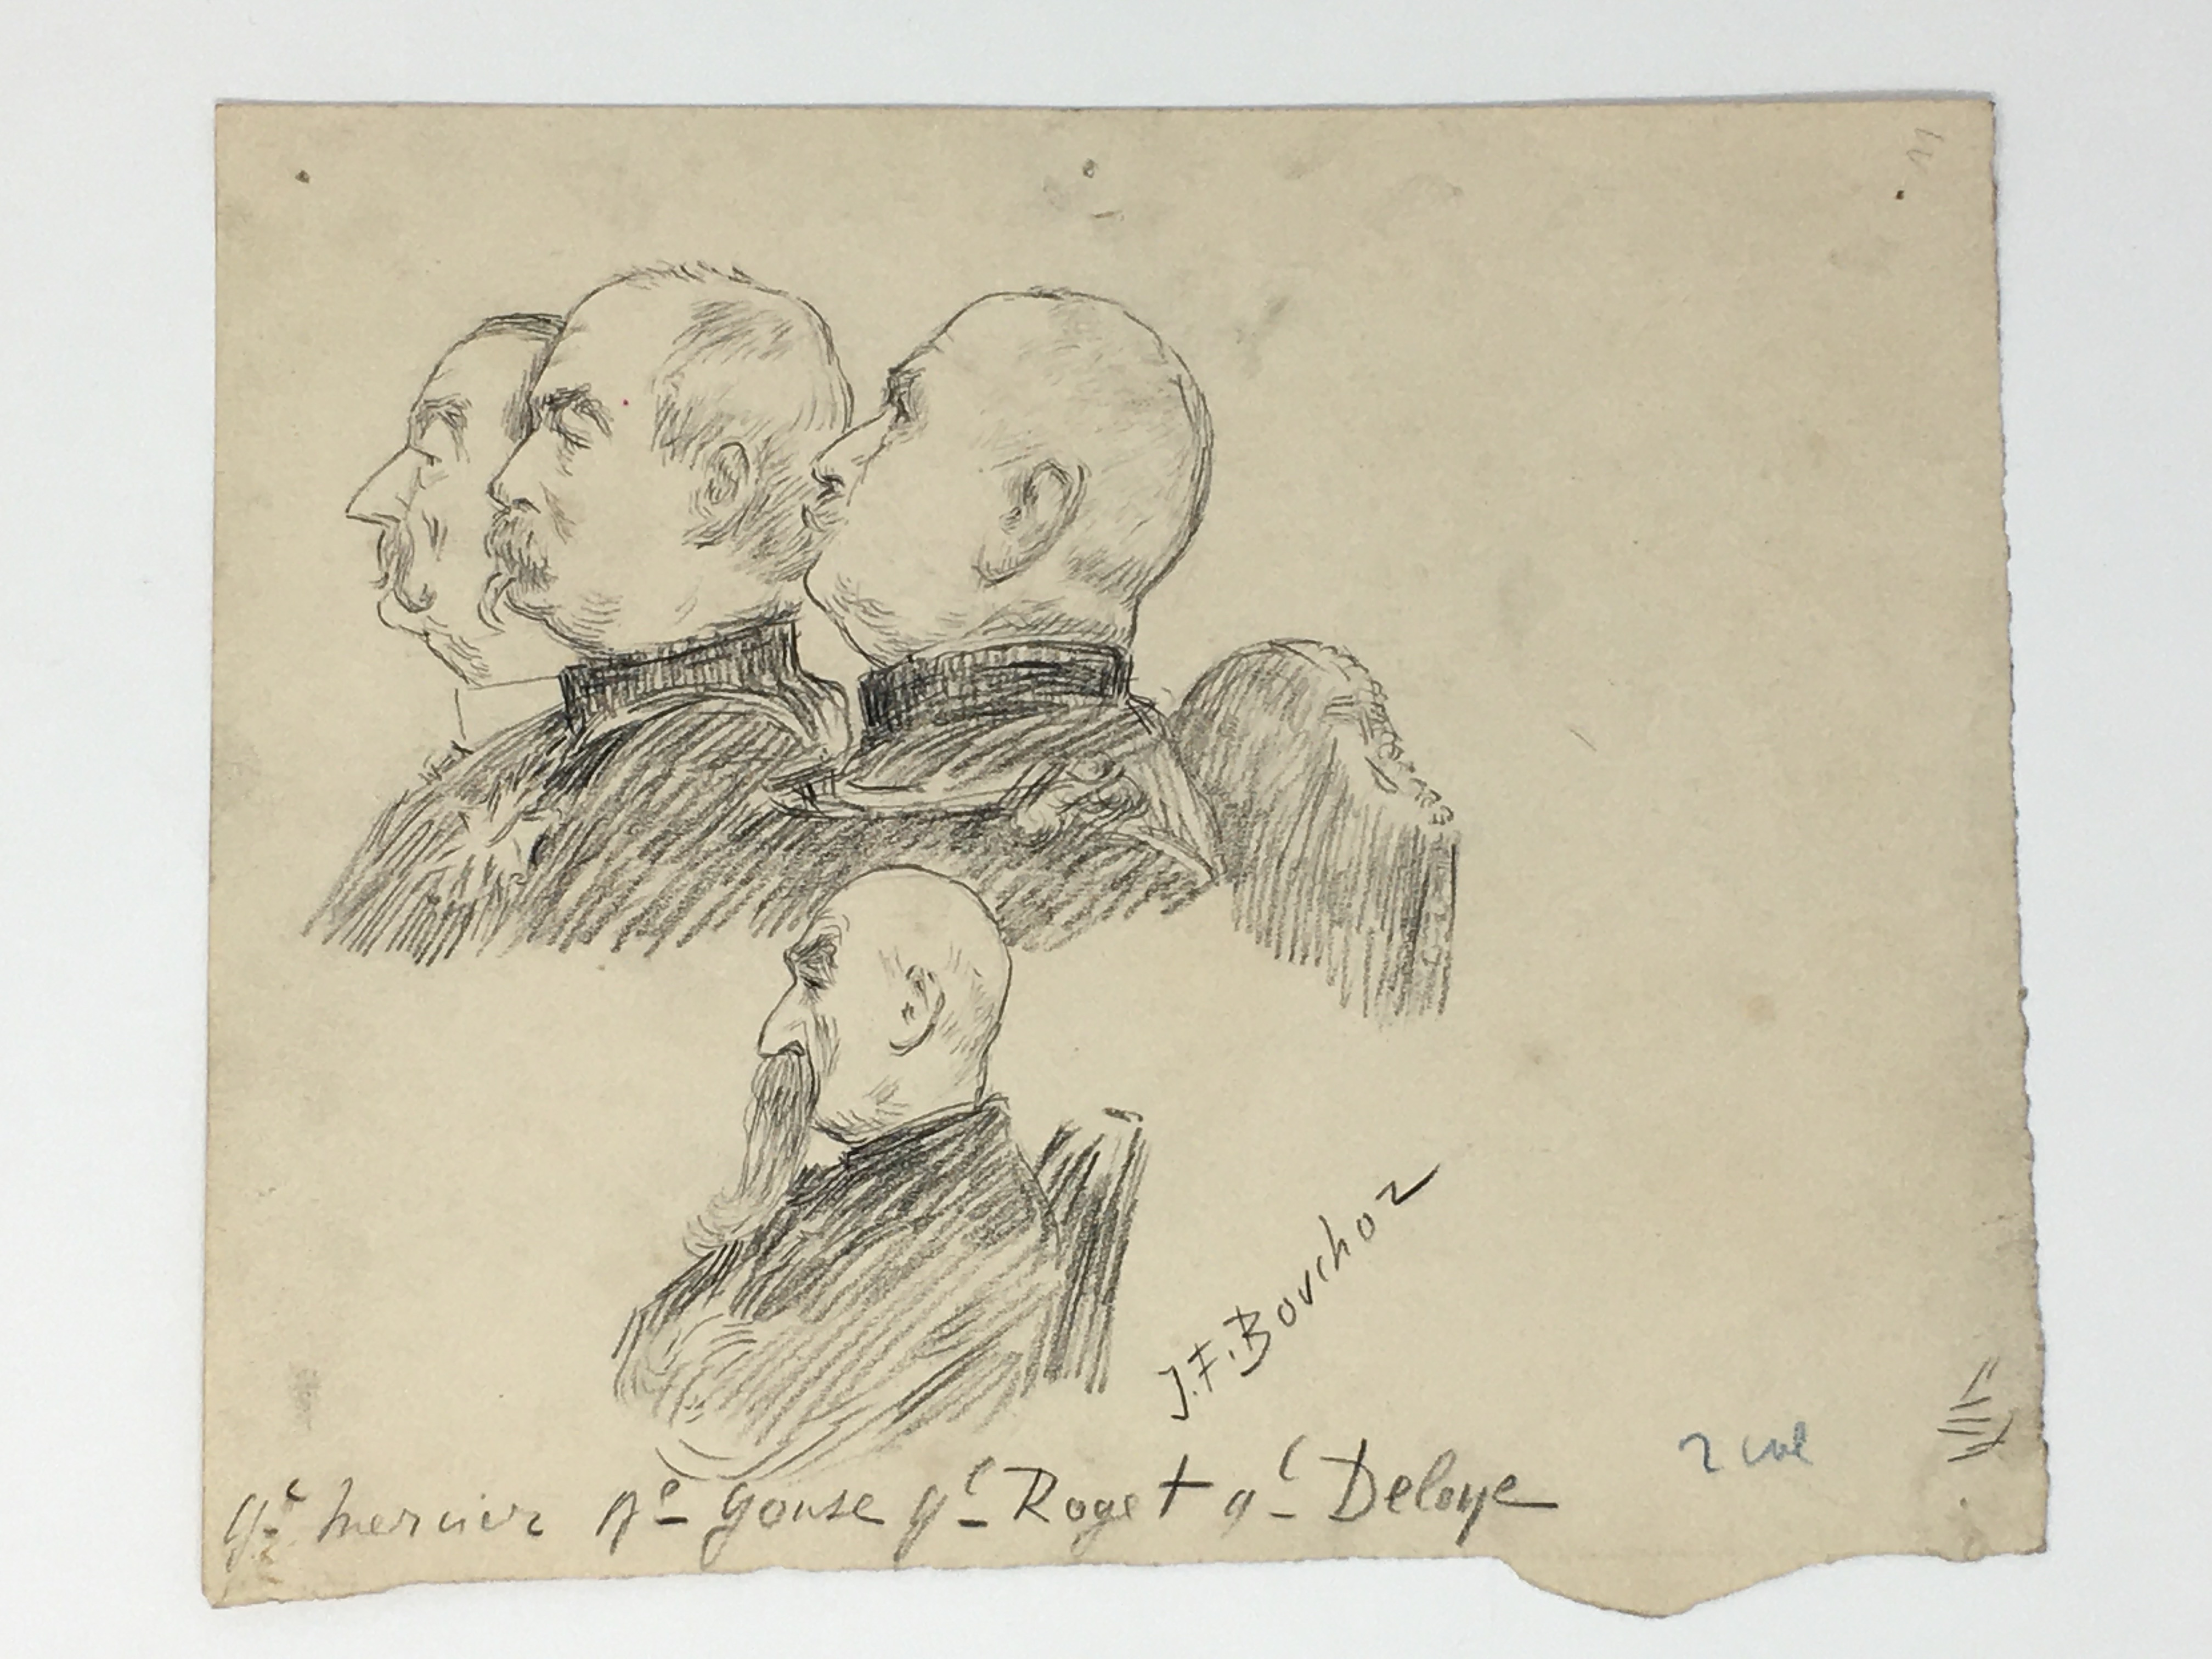 J'Accuse Newspaper, Emile Zola Quote, Signed Dreyfus Portrait, Rare Trial Drawings & Schwartzkoppen - Image 59 of 74